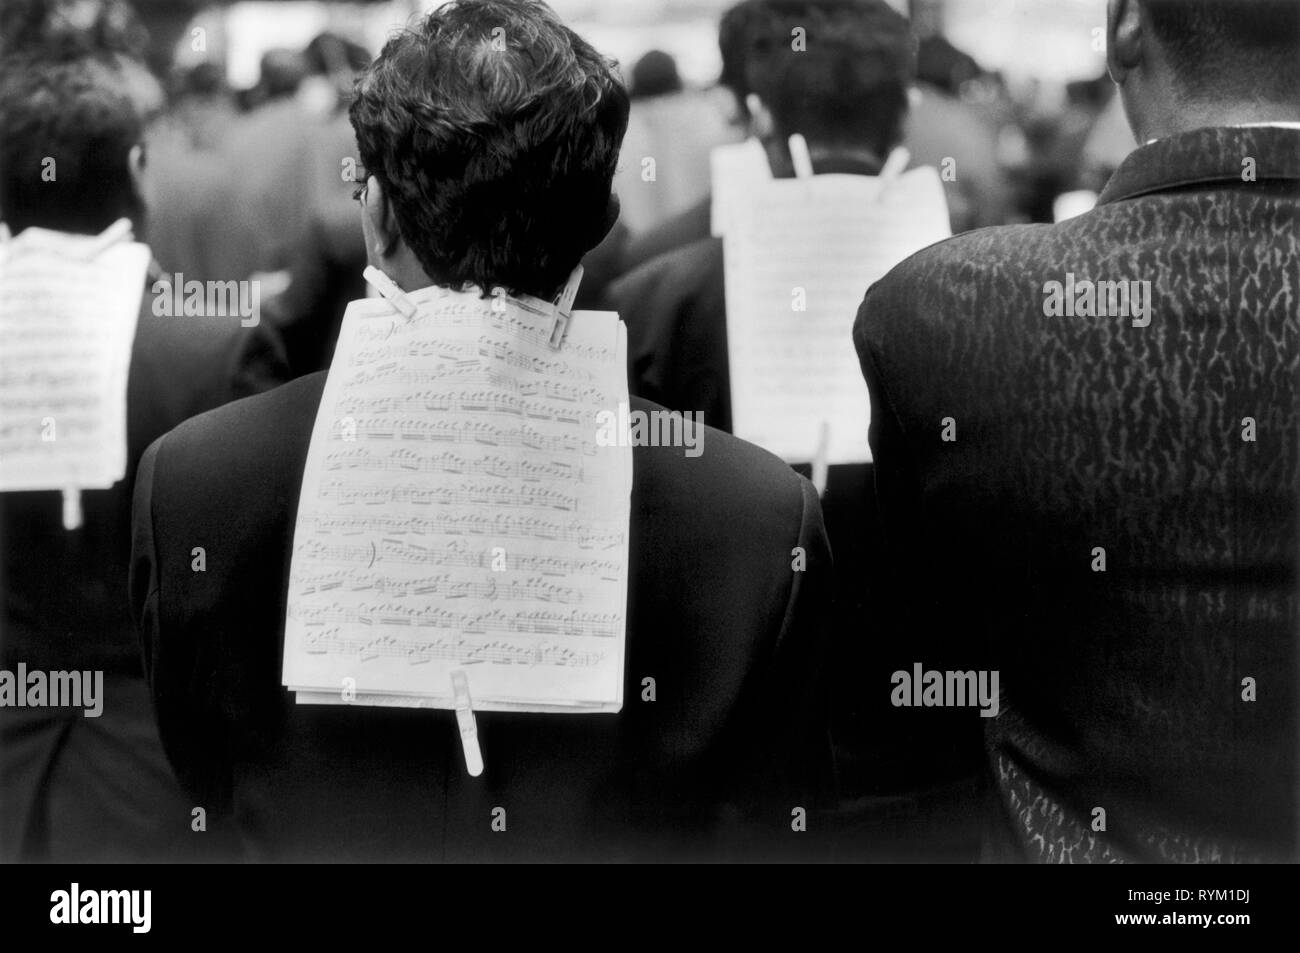 Saints Days procession through the streets of New York. The ethnic  musician's walks down a midtown street. A musical score is attached to the jacket back of each member of the band with cloth pegs.  New York USA  1999. 1990s US HOMER SYKES. - Stock Image